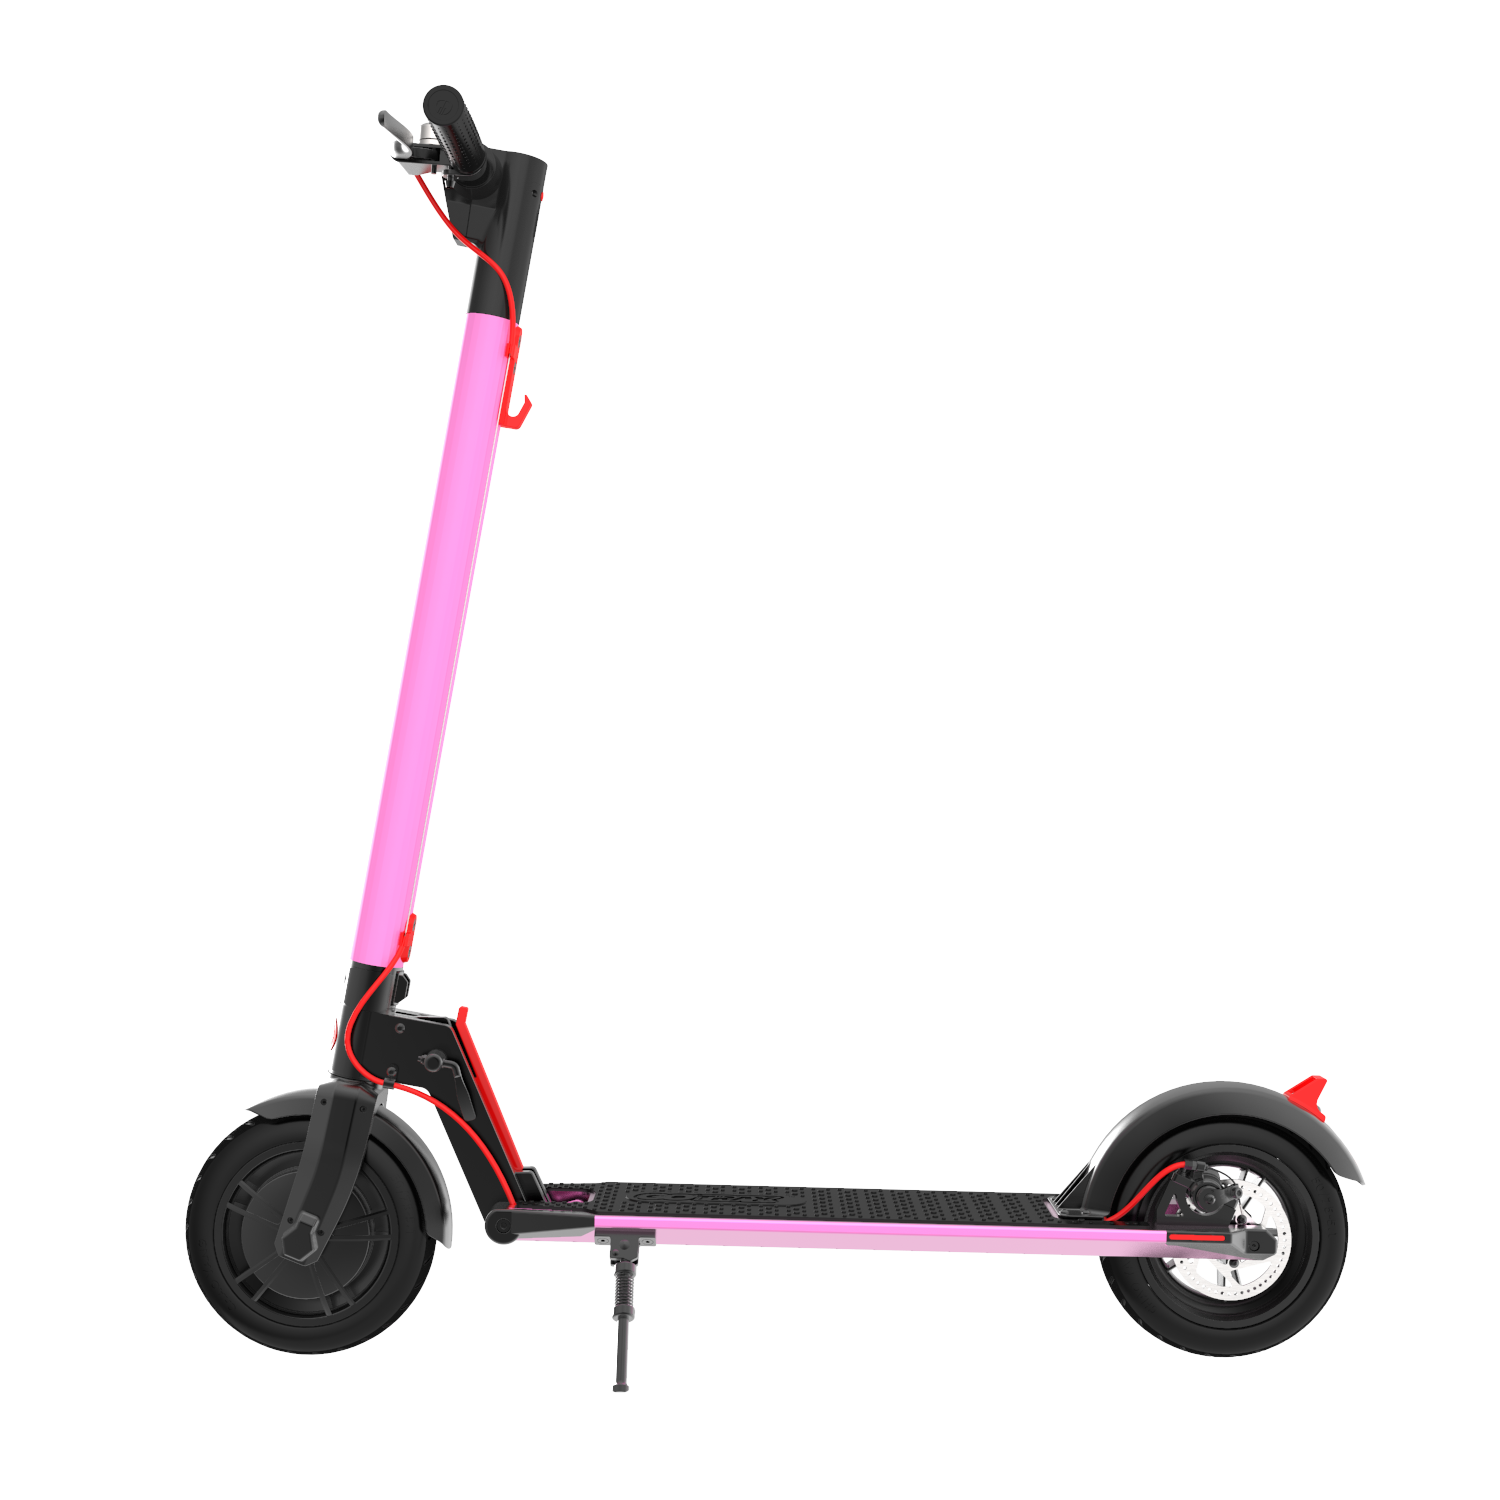 What's the coolest scooter that doesn't require a license to